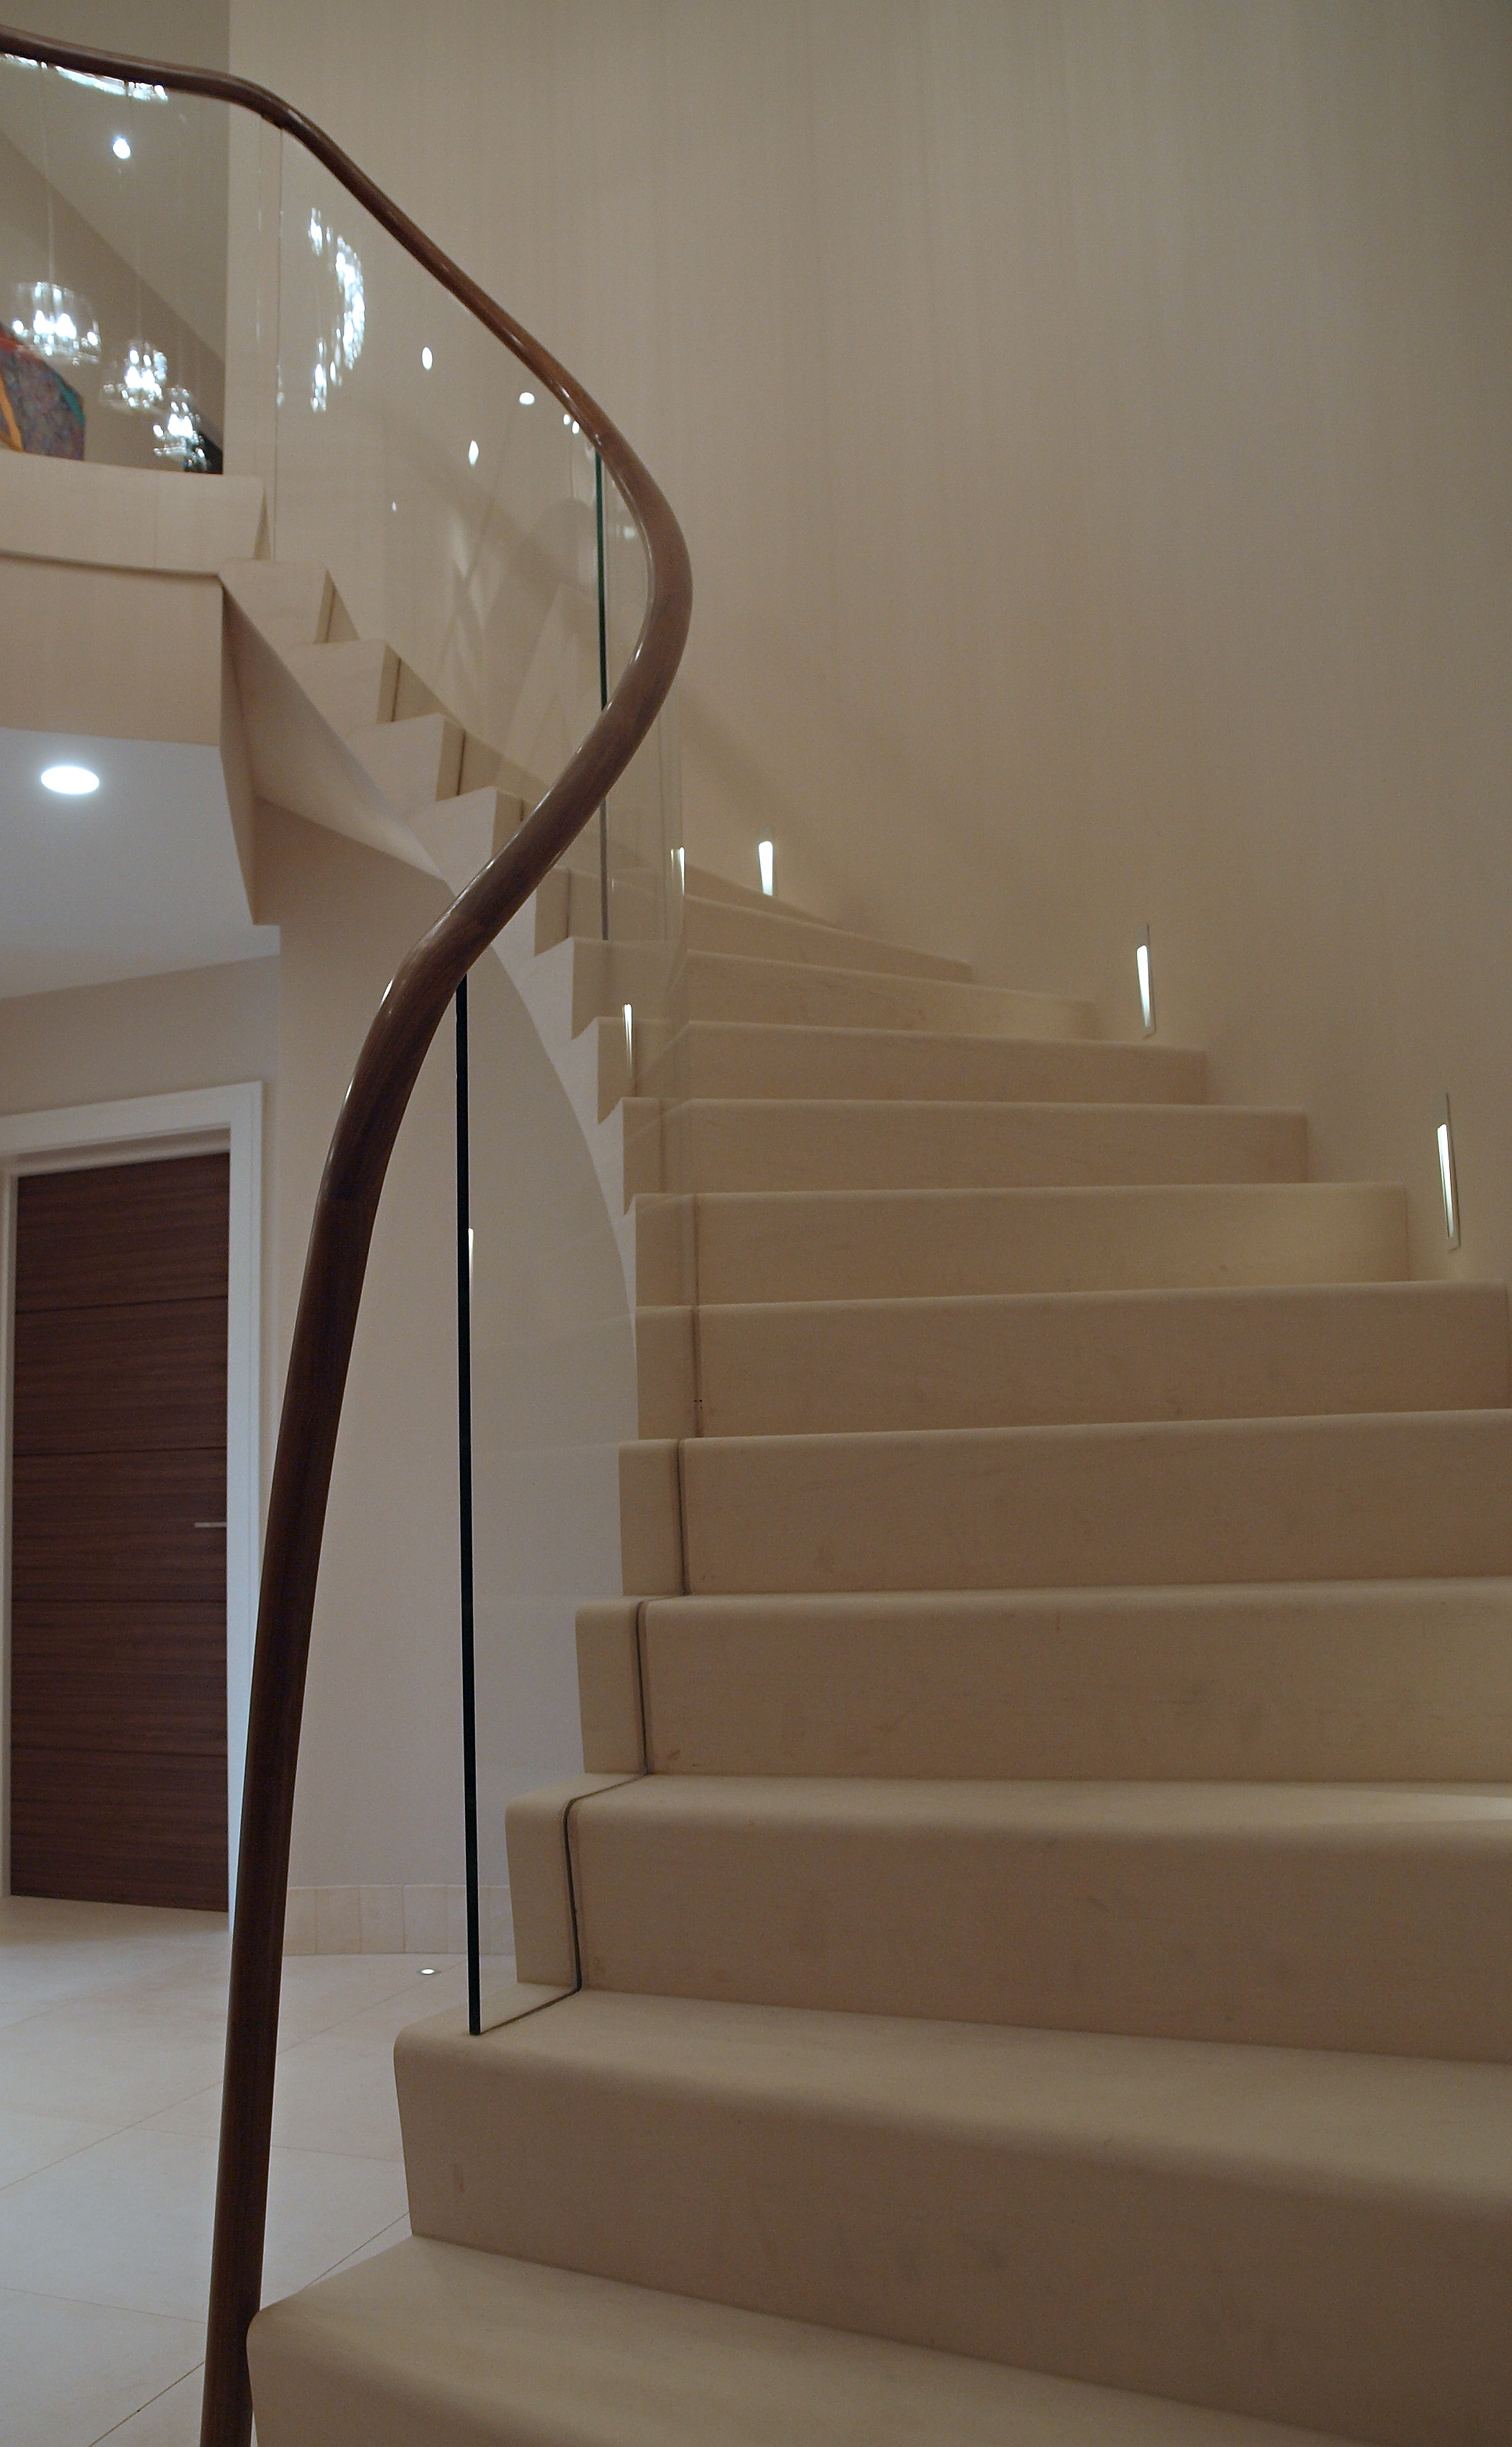 13. Cantilever Malone stone staircase with glass balustrade set into slotted tread – Hertfordshire